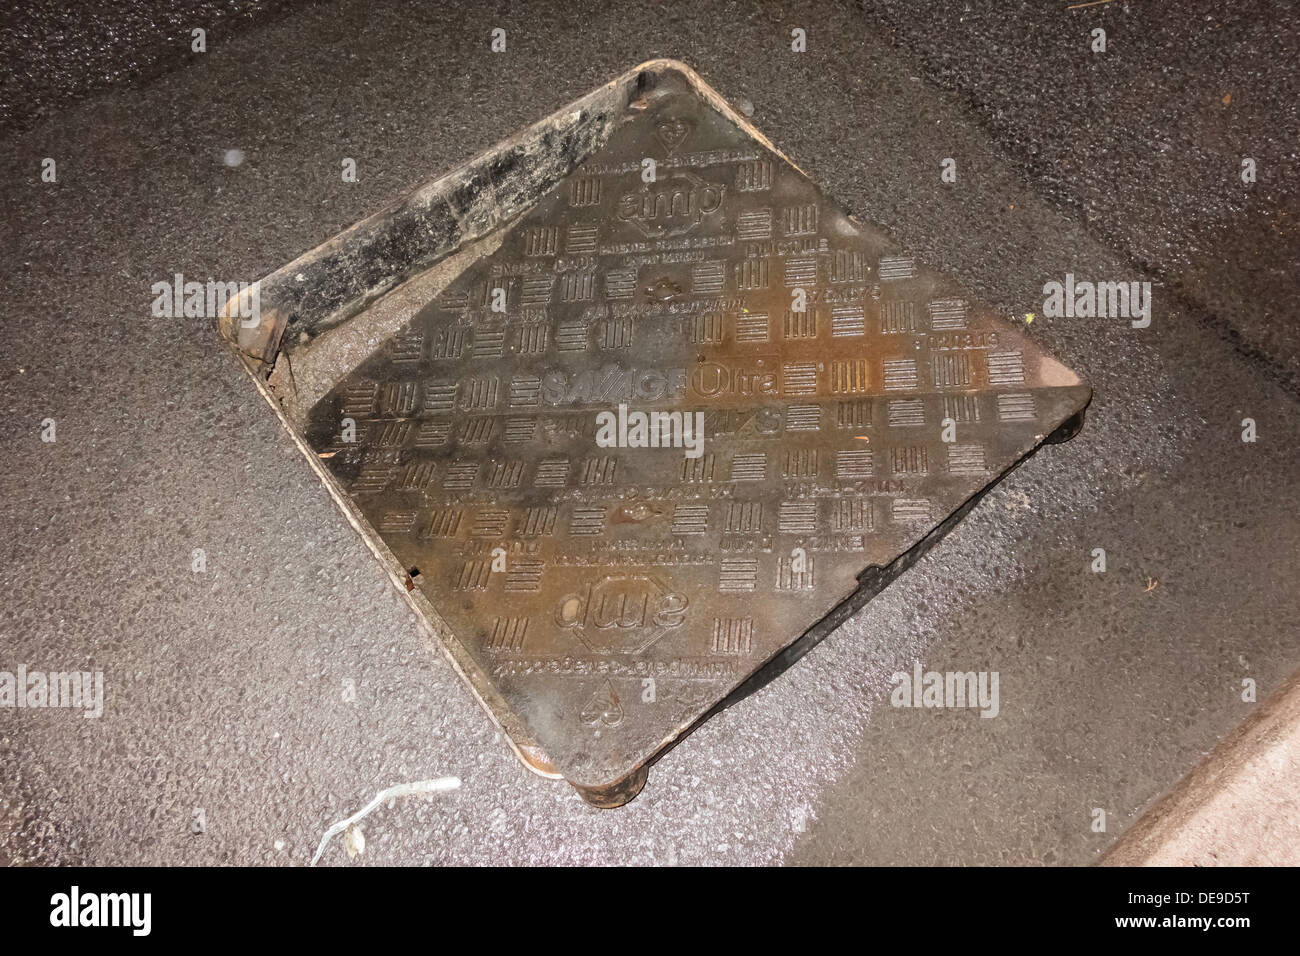 Sewer manhole cover displaced by flooding from underneath leaving a hazard to drivers or cyclists - Stock Image